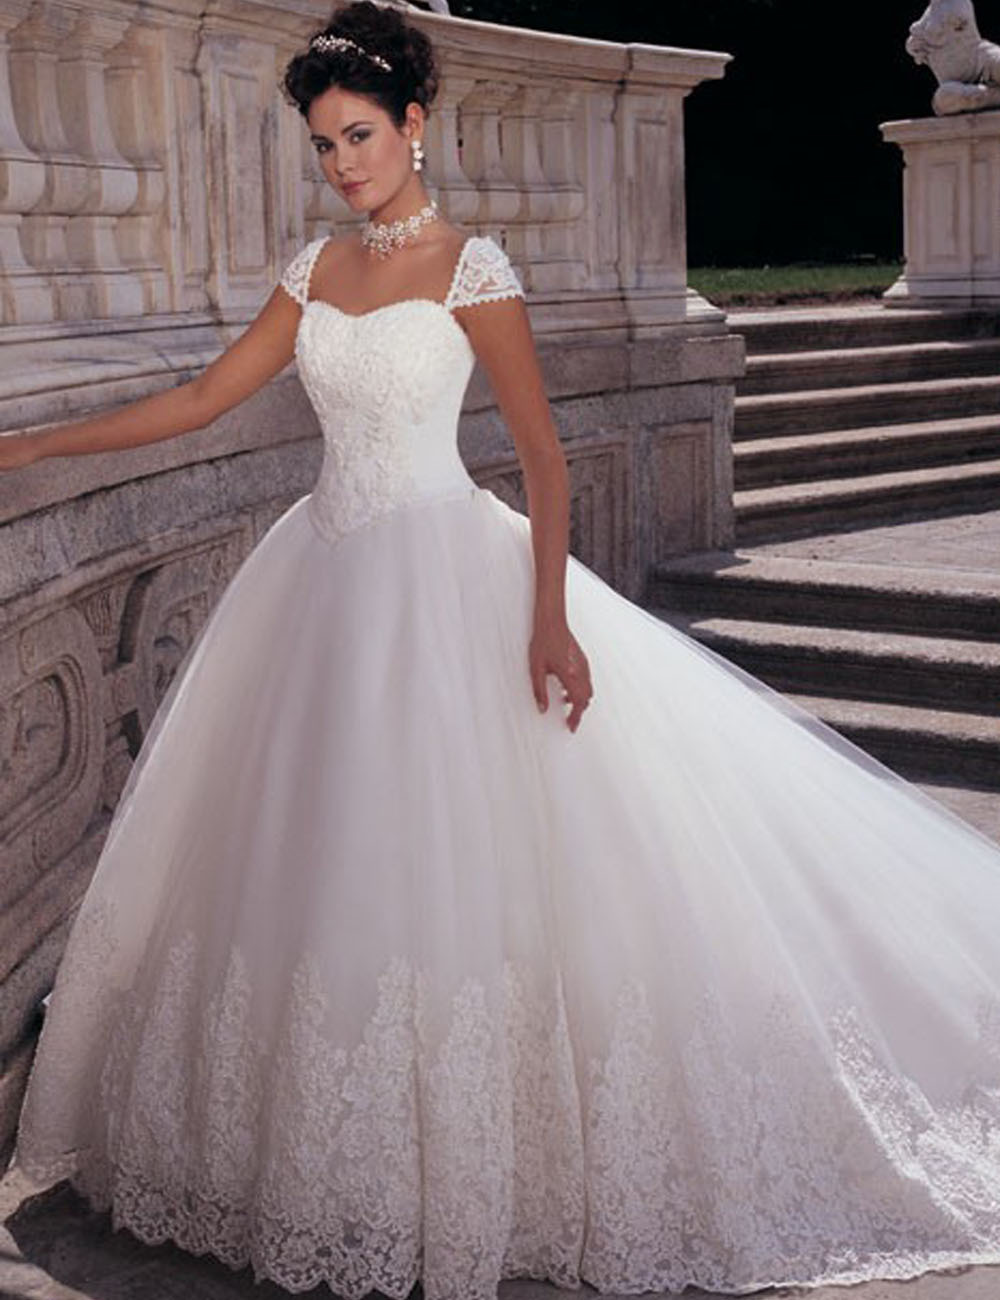 Wedding Fairytale dresses whitefield pictures photos